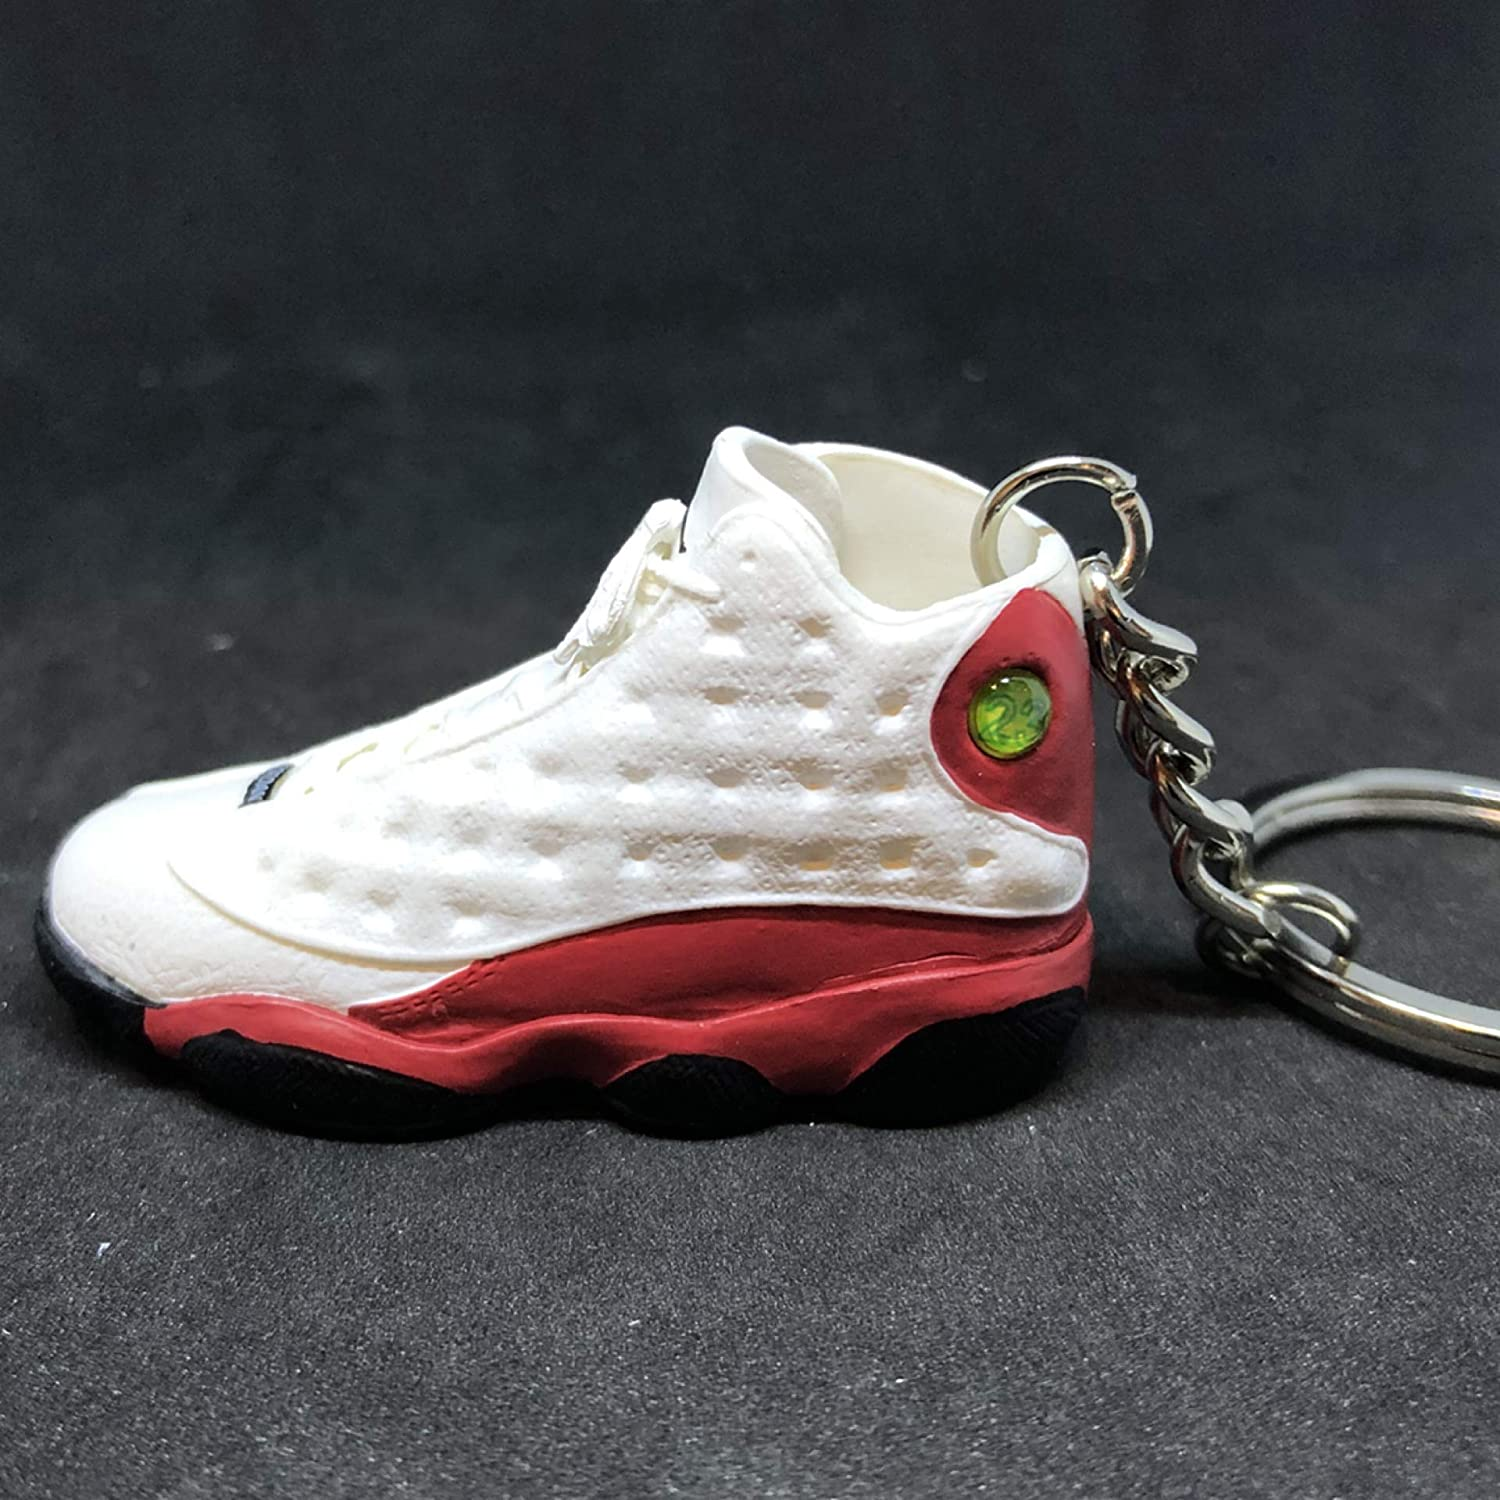 09288329806 Amazon.com : Pair Air Jordan XIII 13 Retro Cherry Red White OG Sneakers  Shoes 3D Keychain 1:6 Figure + Shoe Box : Everything Else